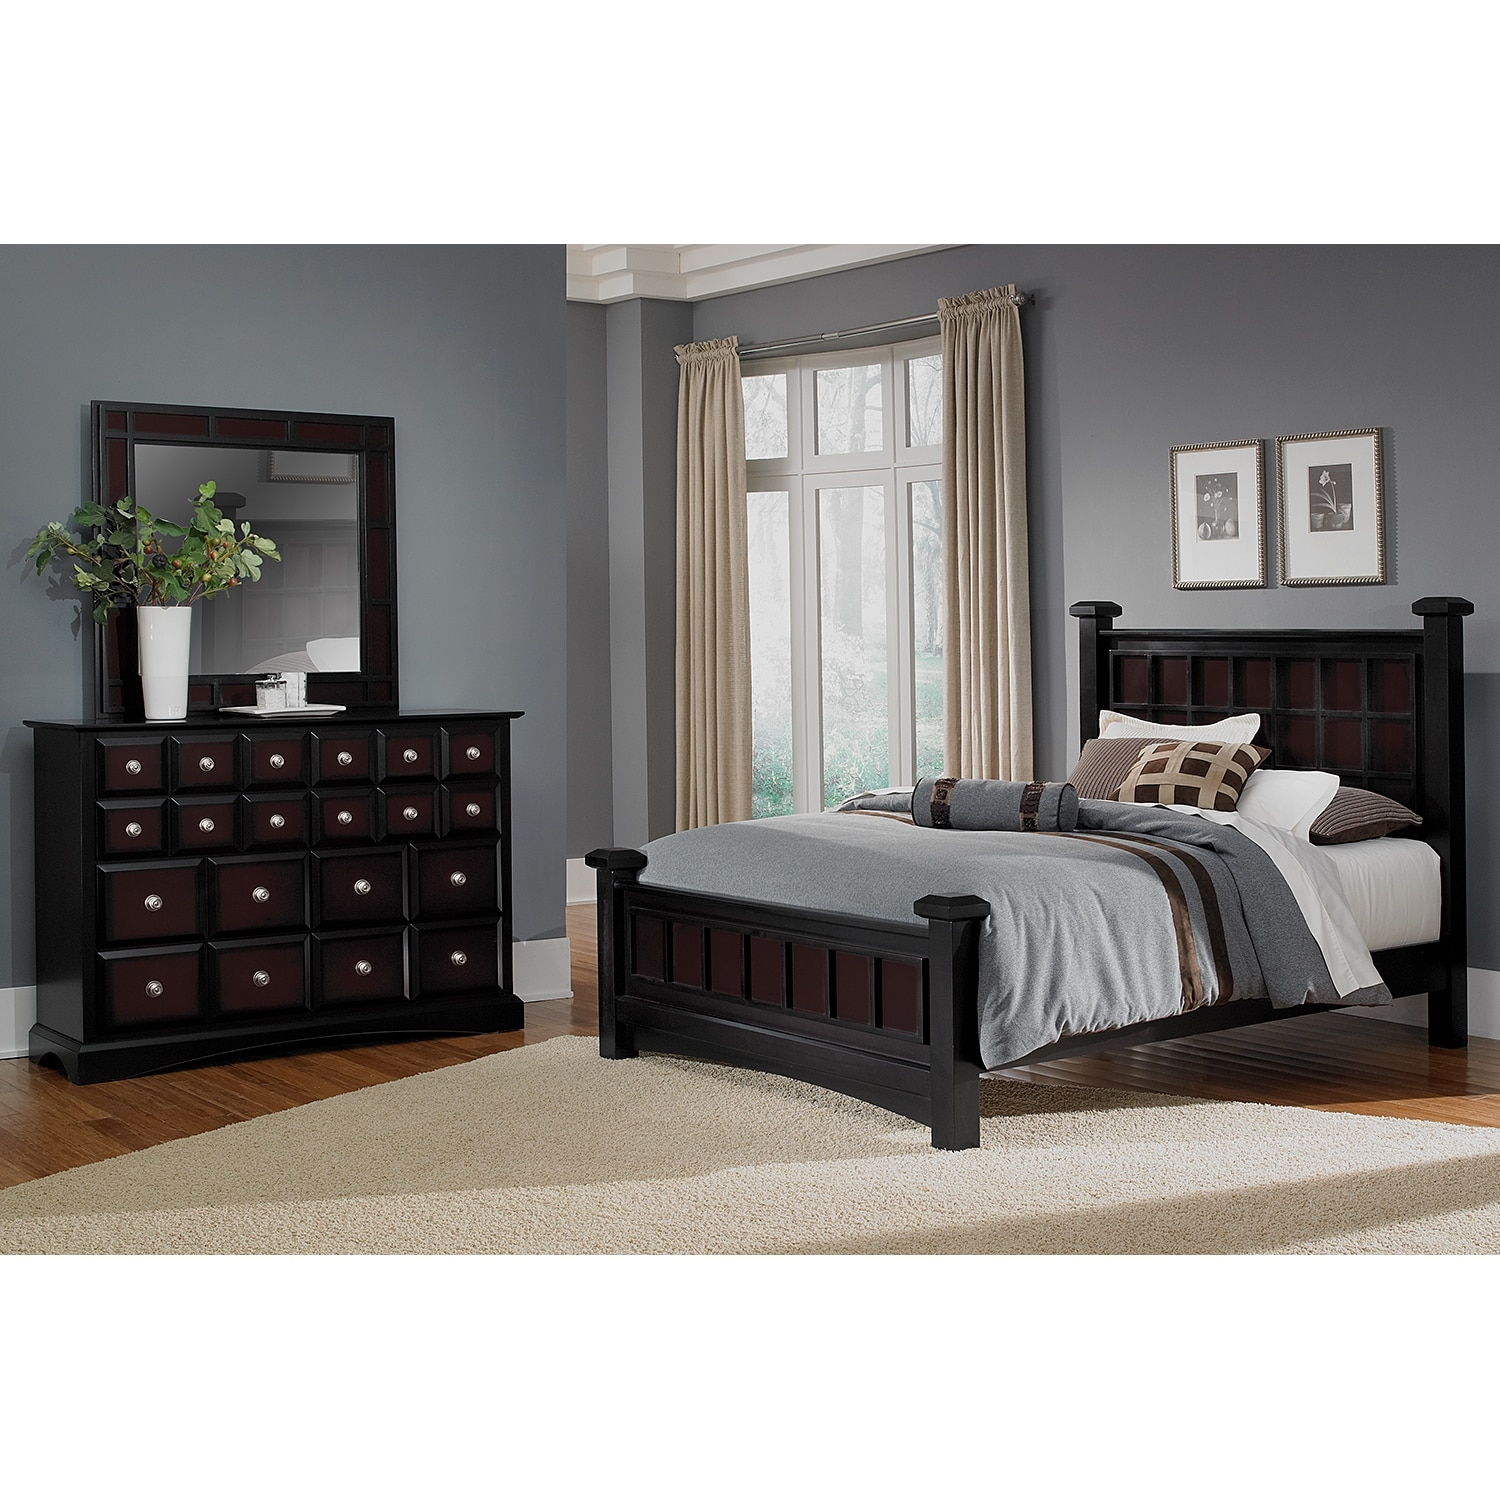 Winchester 5 Piece Queen Bedroom Set Black And Burnished Merlot American